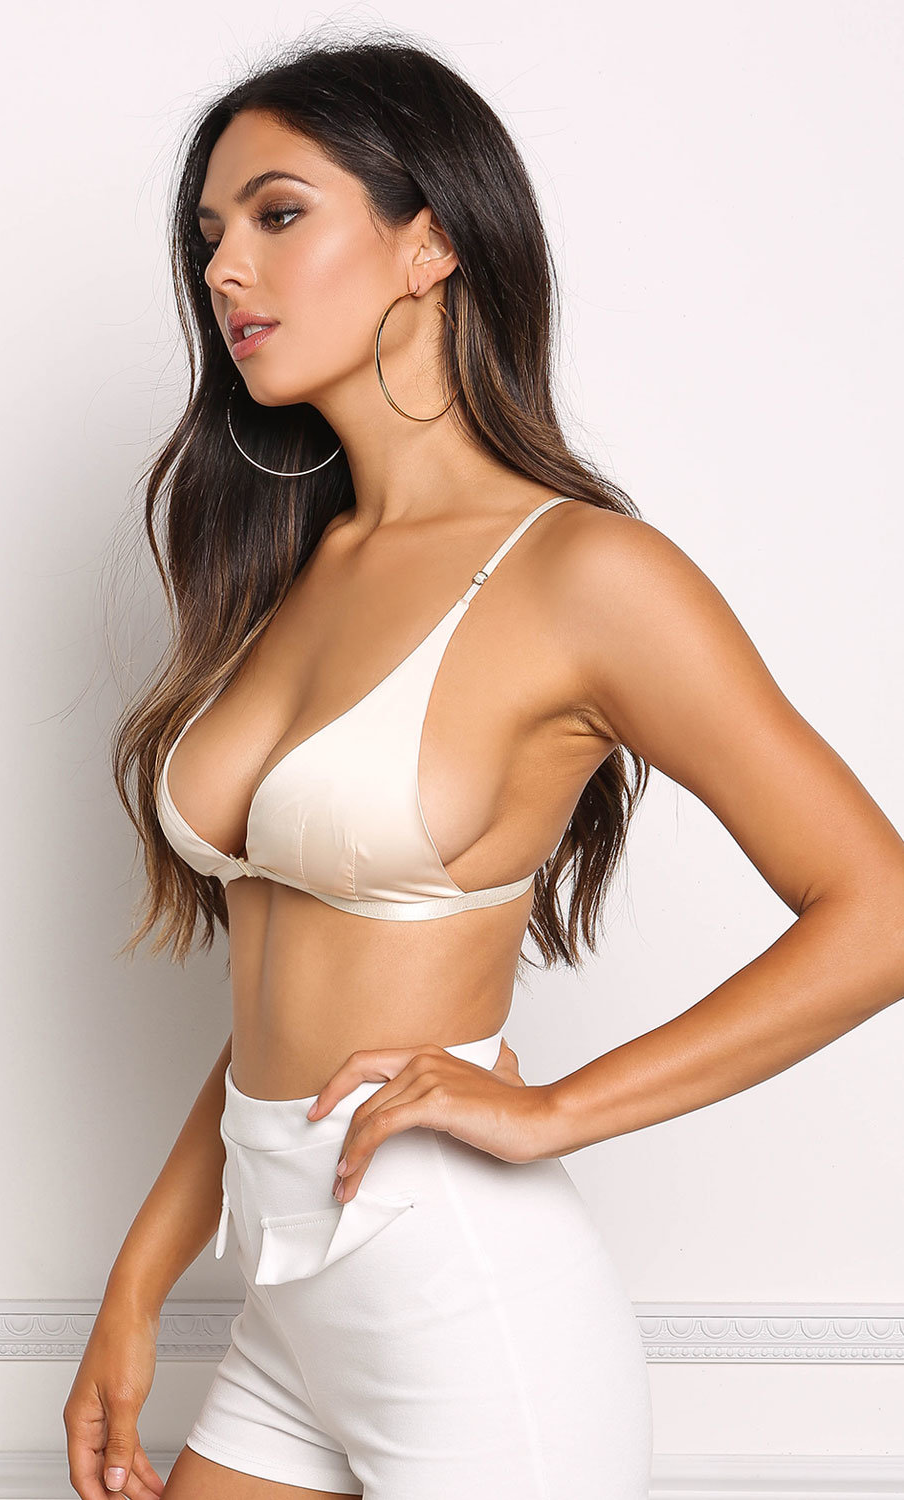 Christen Harper Hot new pics